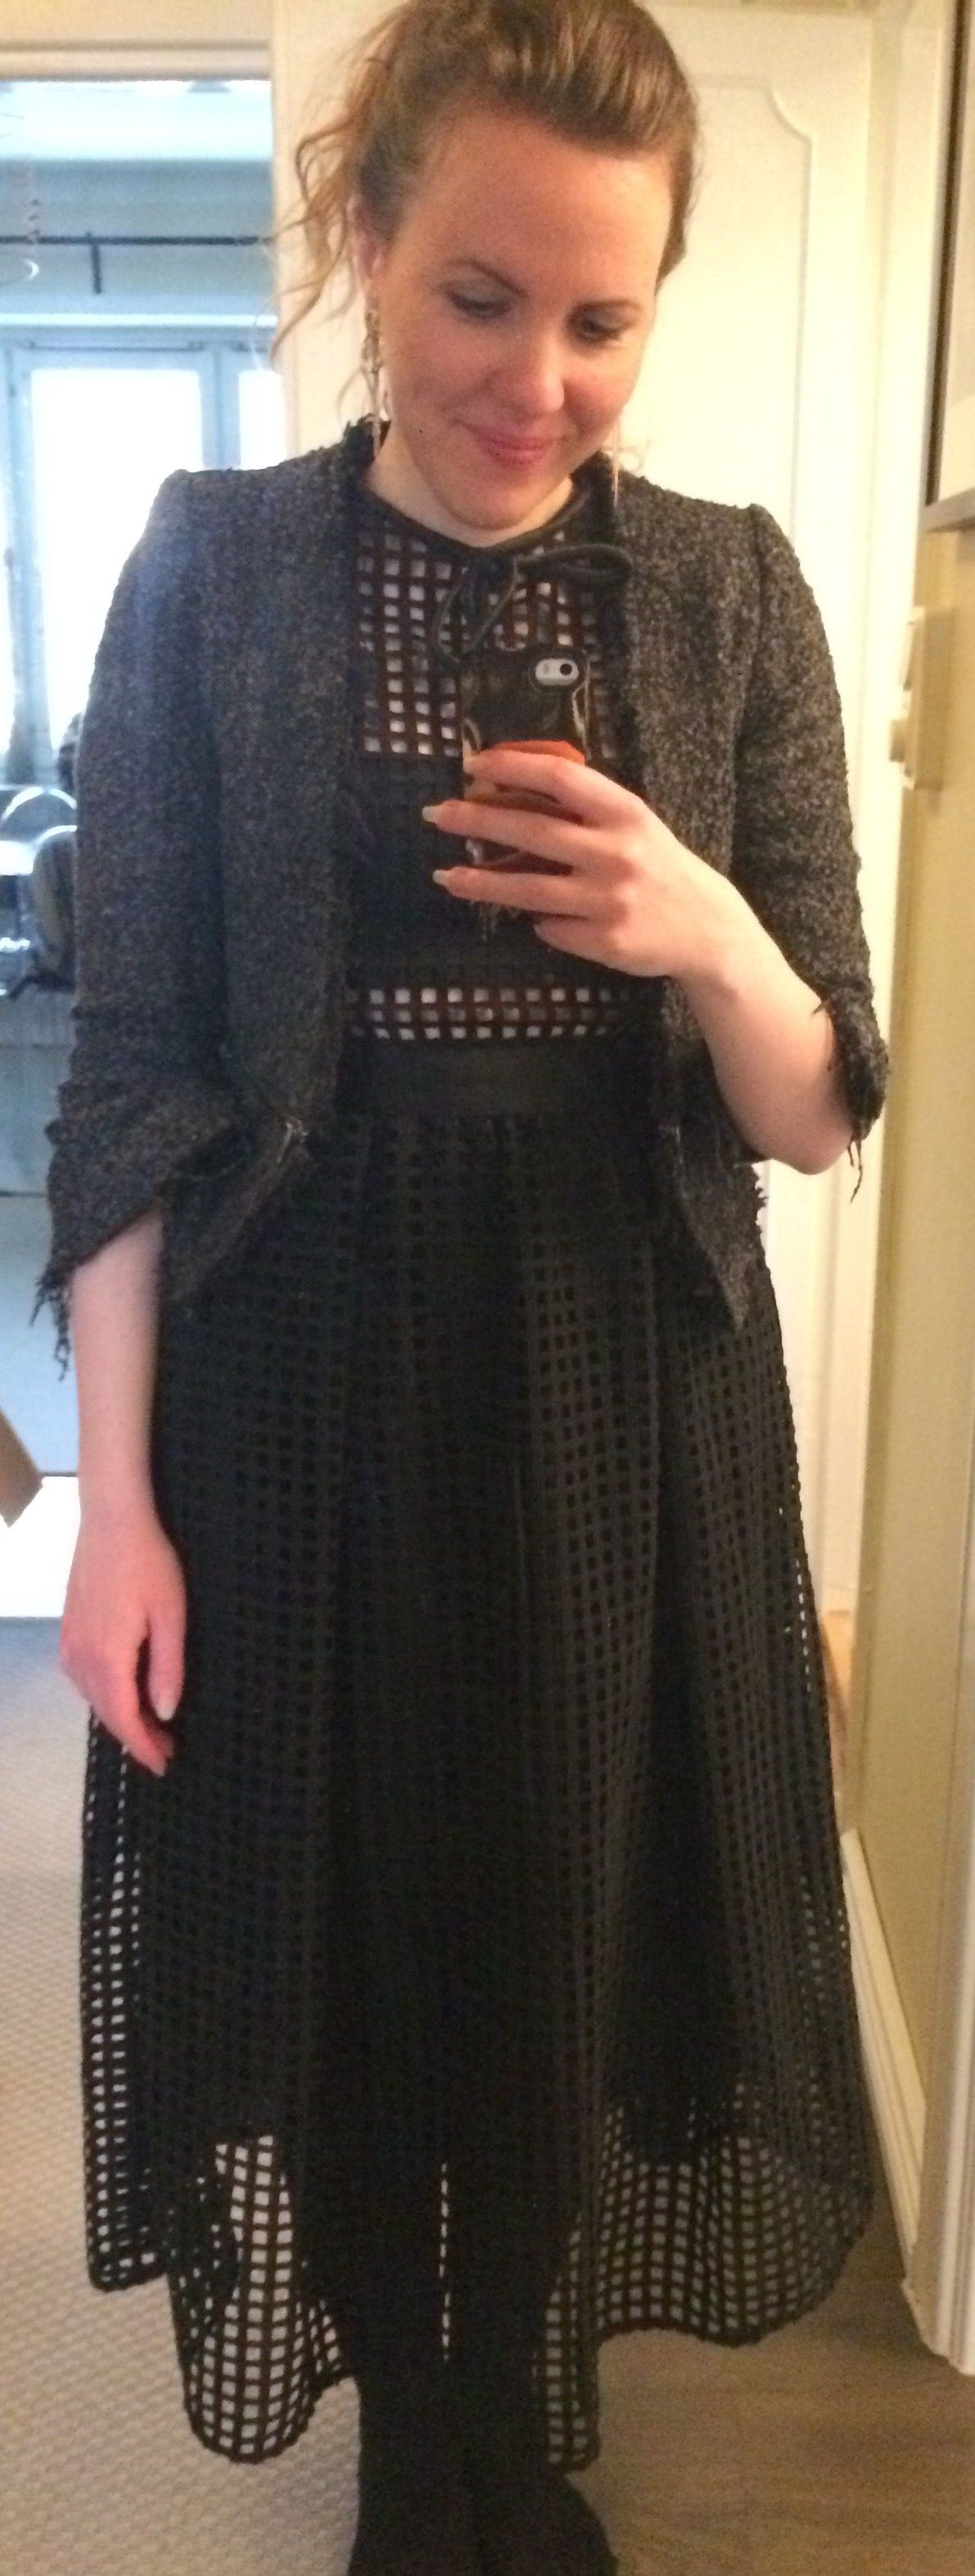 Ready for the opera. Ootd. Fashion. My looks.